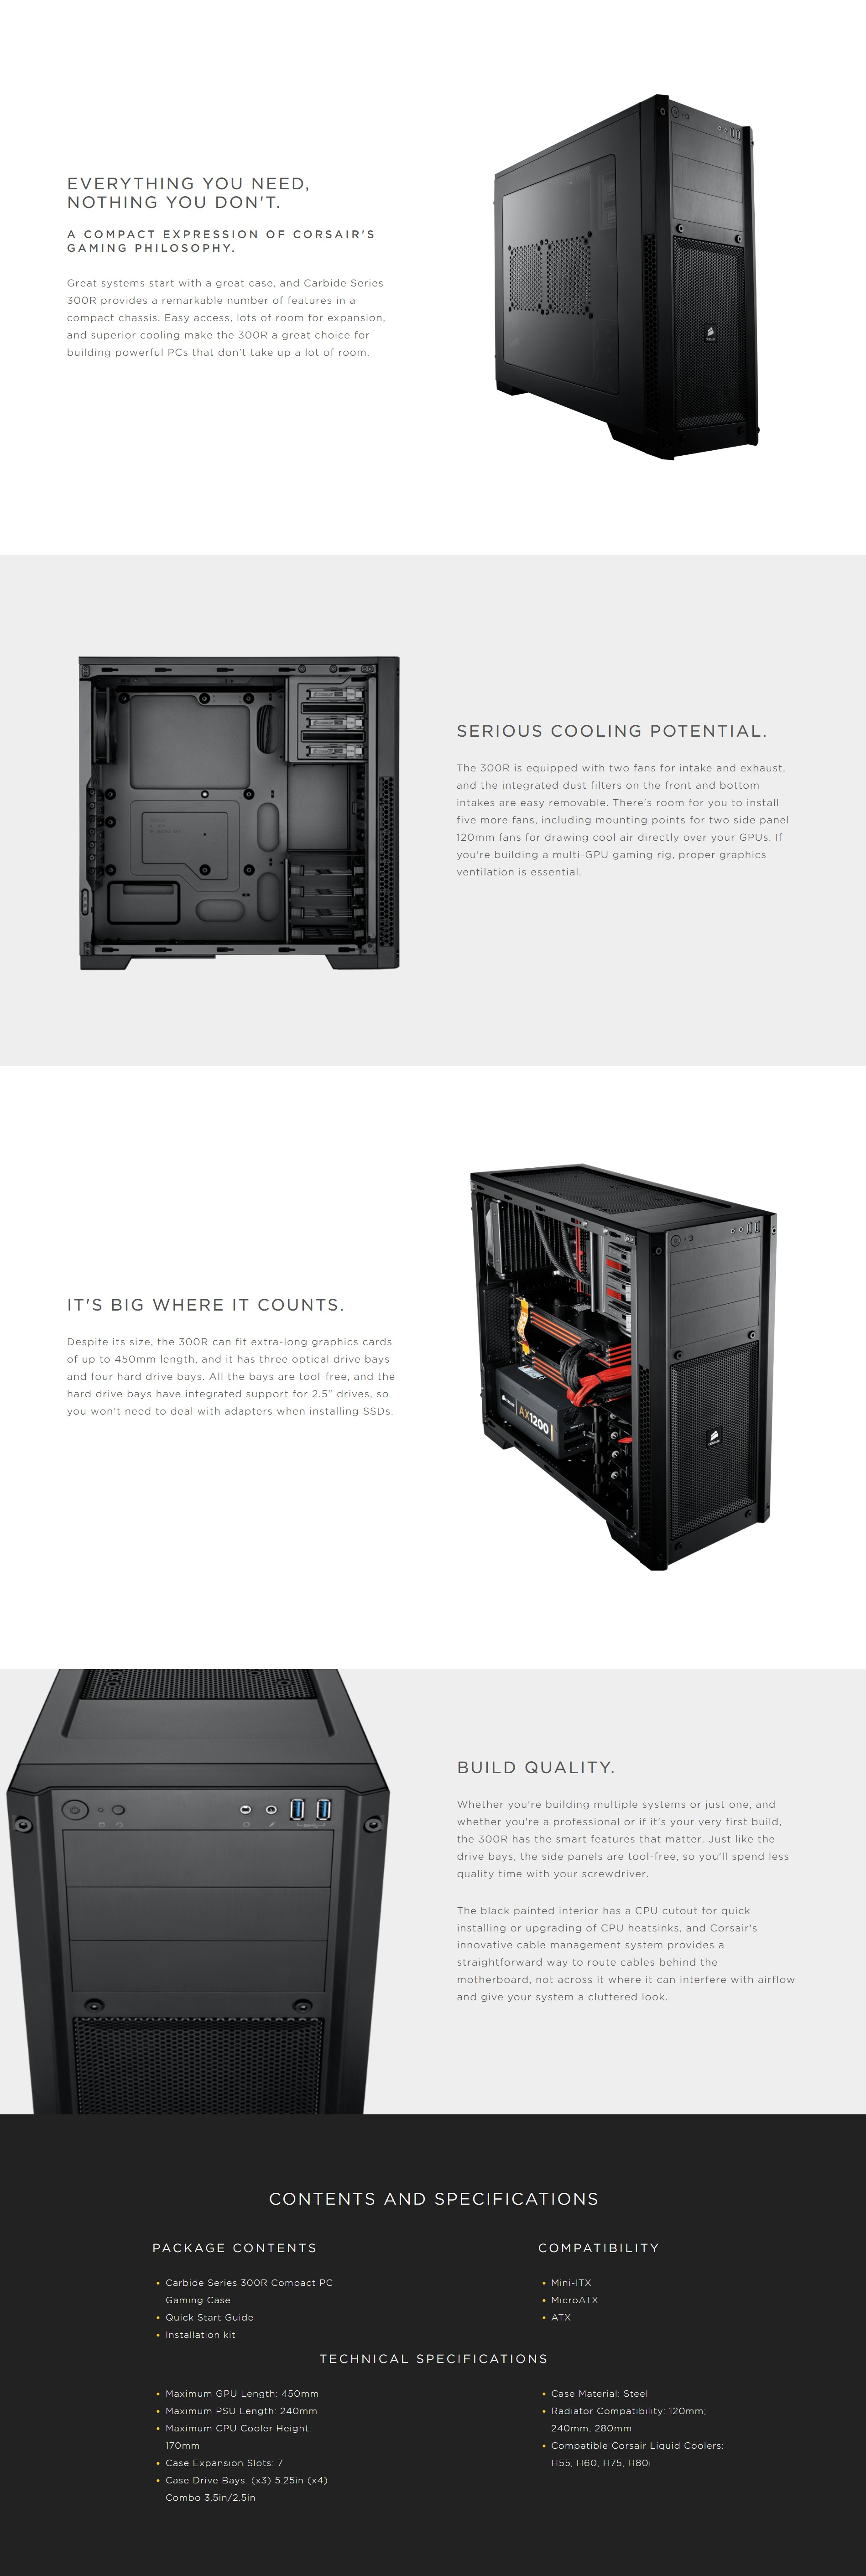 corsair-300r-window-full-atx-case-black.jpg